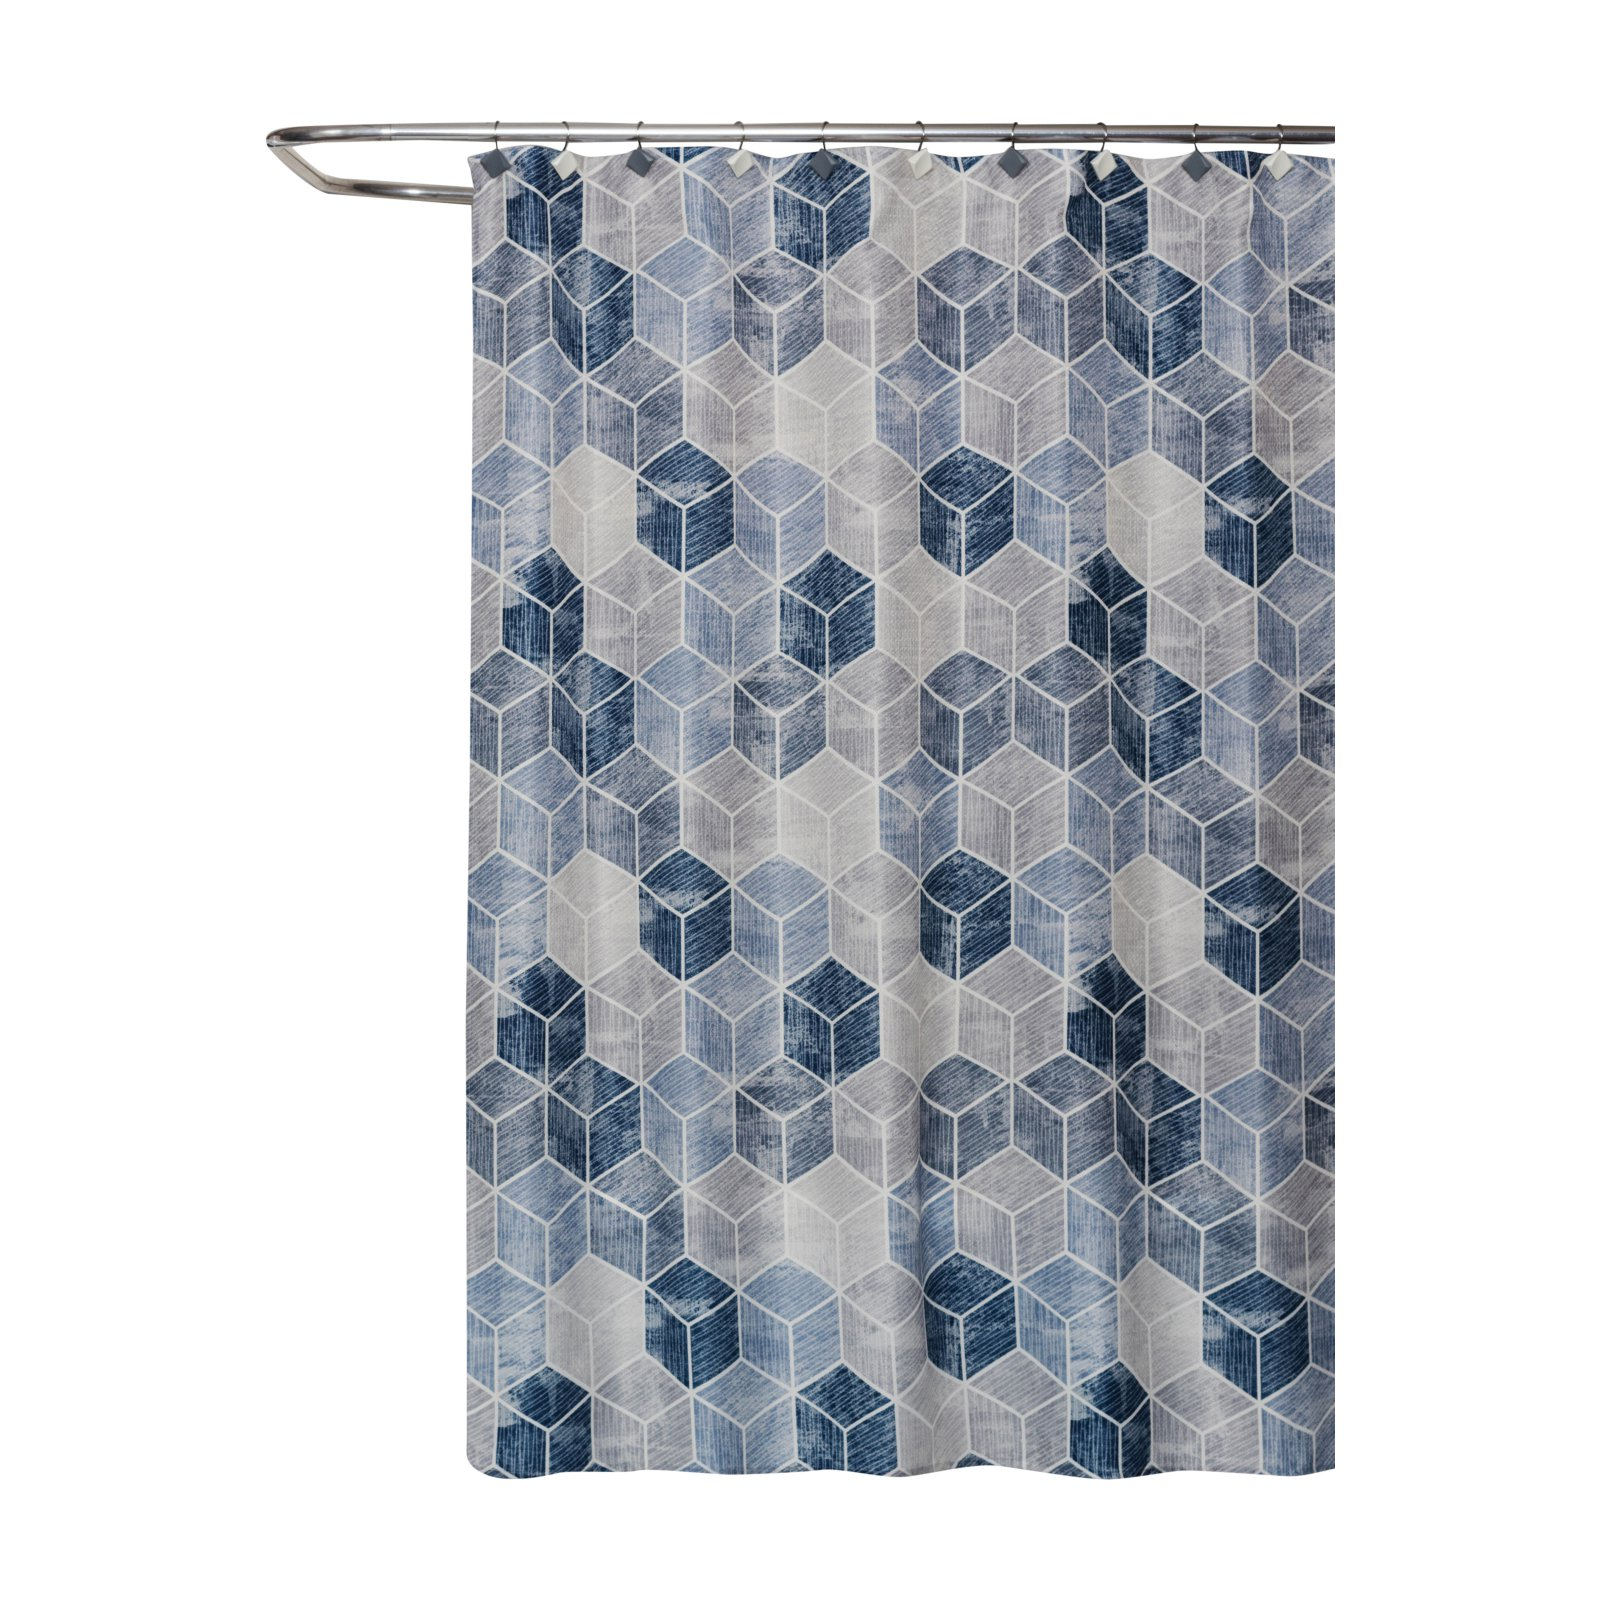 82 Shower Curtain Skl Home Cubes Shower Curtain